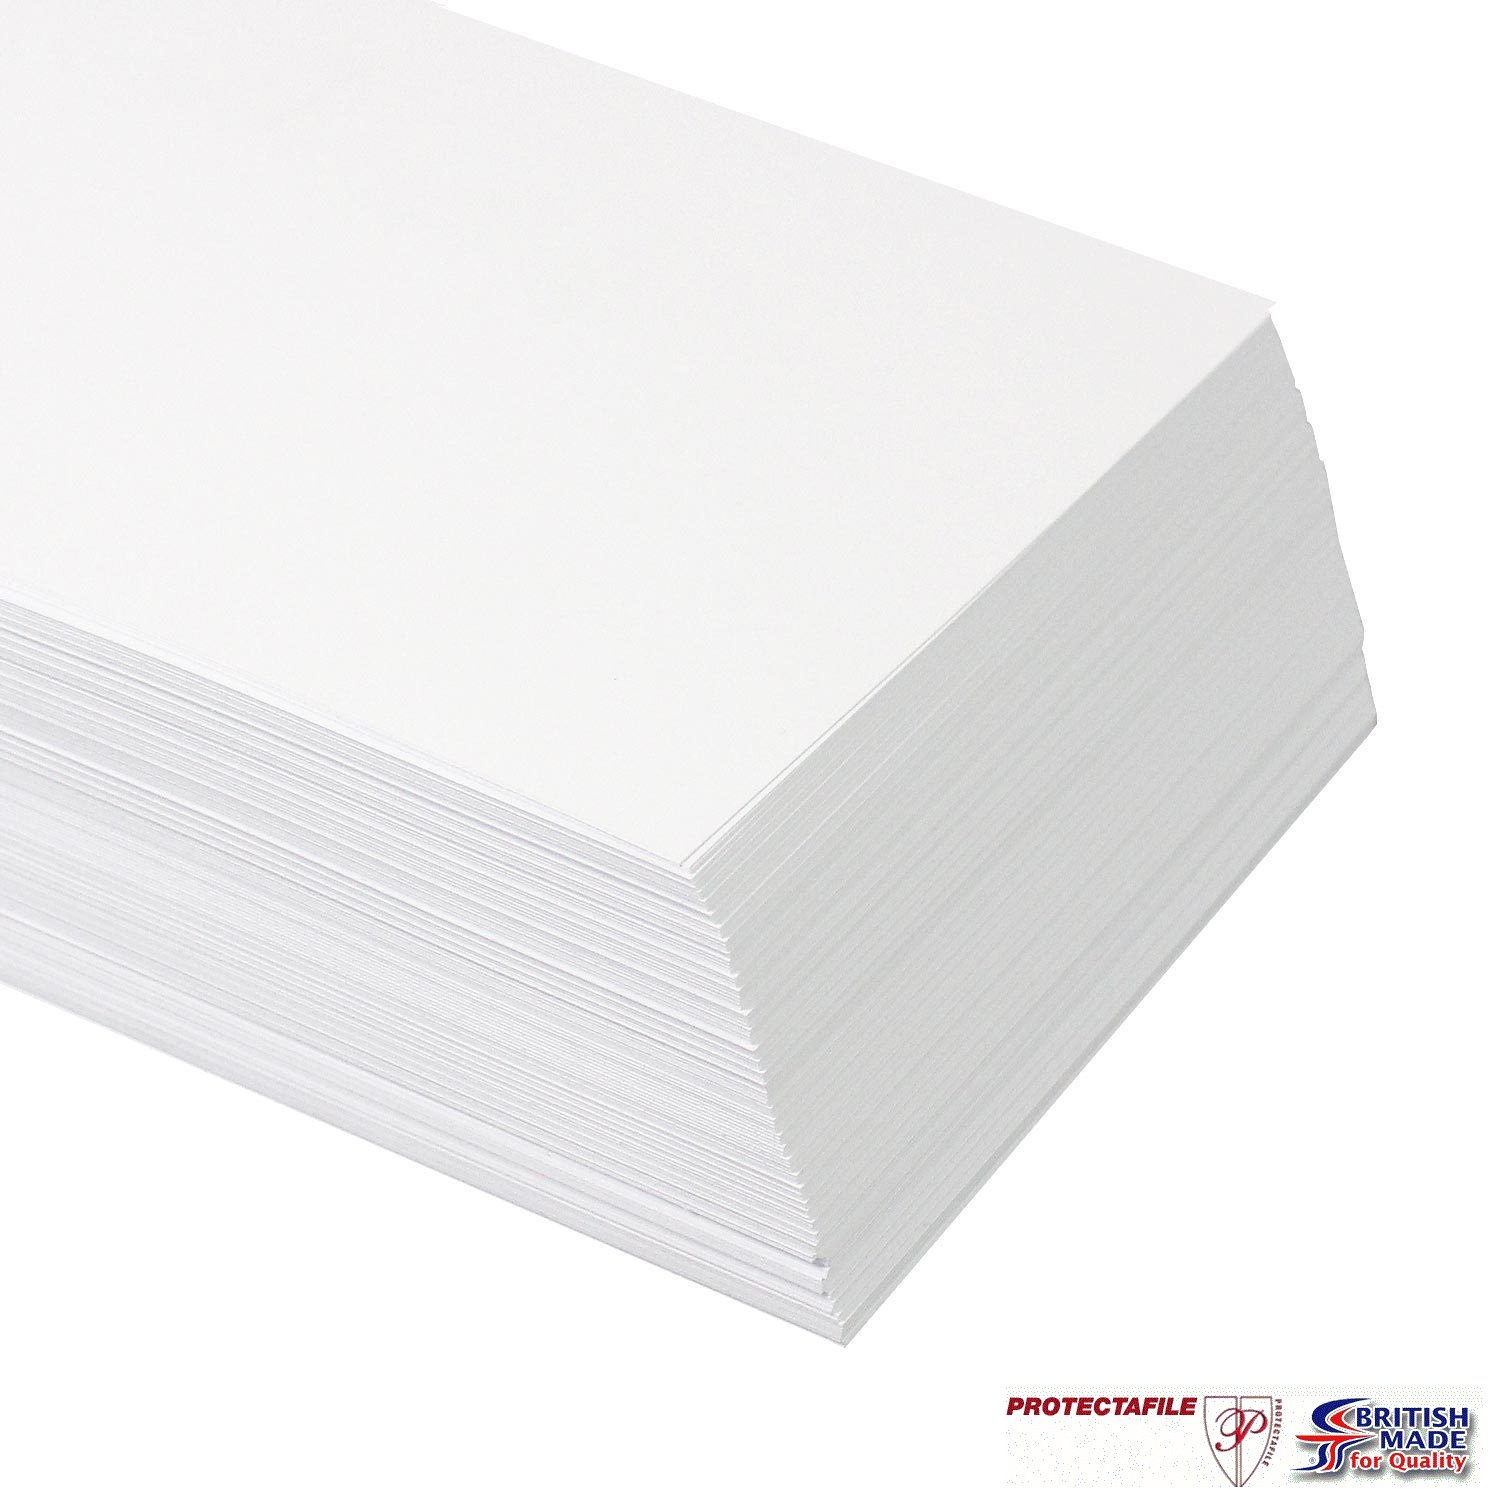 100 x A4 PREMIUM THICK WHITE PRINTER CRAFT CARD 300gsm Quickdraw